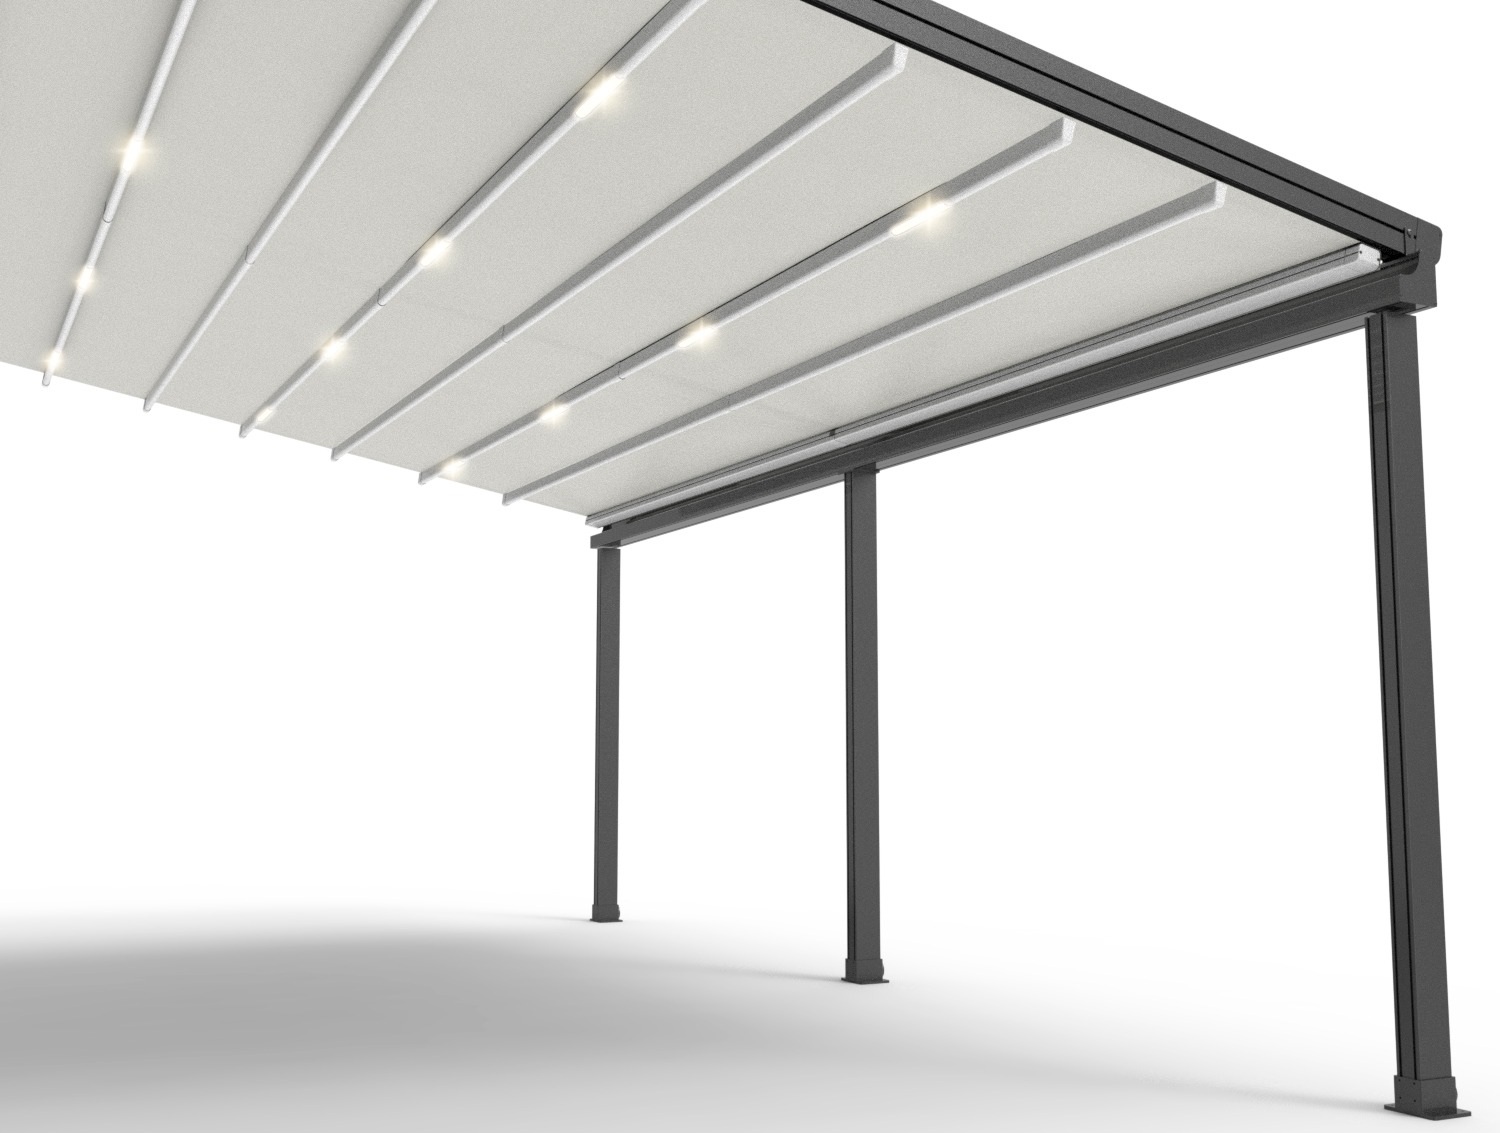 Dimmable LEDLighting - In-built lighting ensures an area can be used year round, day and night! The optional LED lighting allows for full control of any outdoor space.